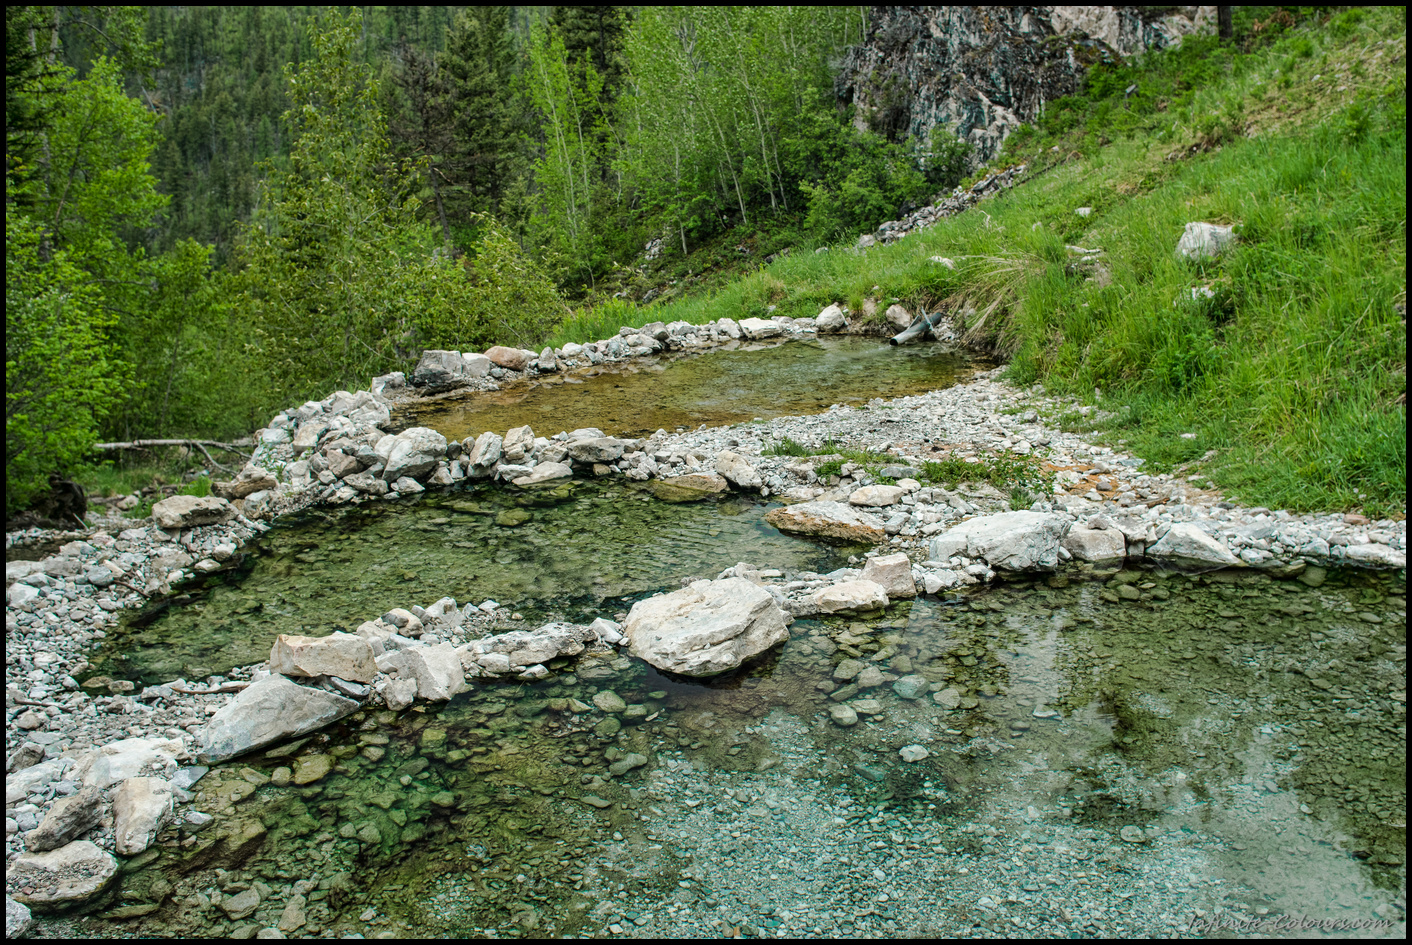 Ram Creek warm Springs pools